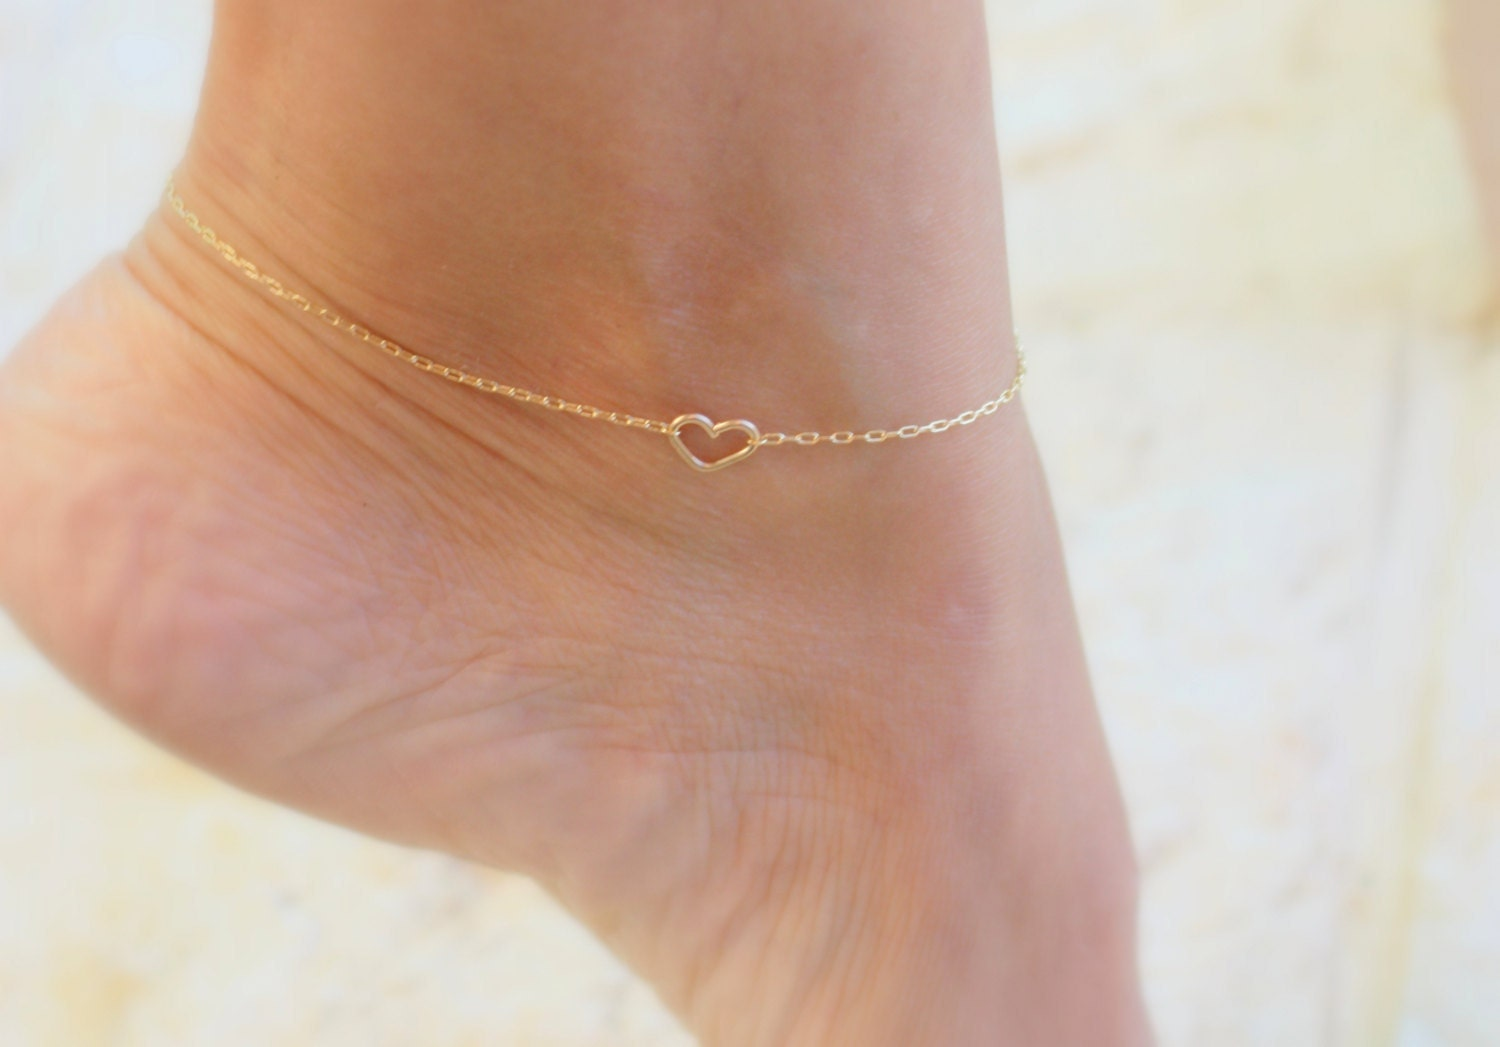 anklet gold strand get ankle white double jewelry bracelet can inch you amazon pin heart com